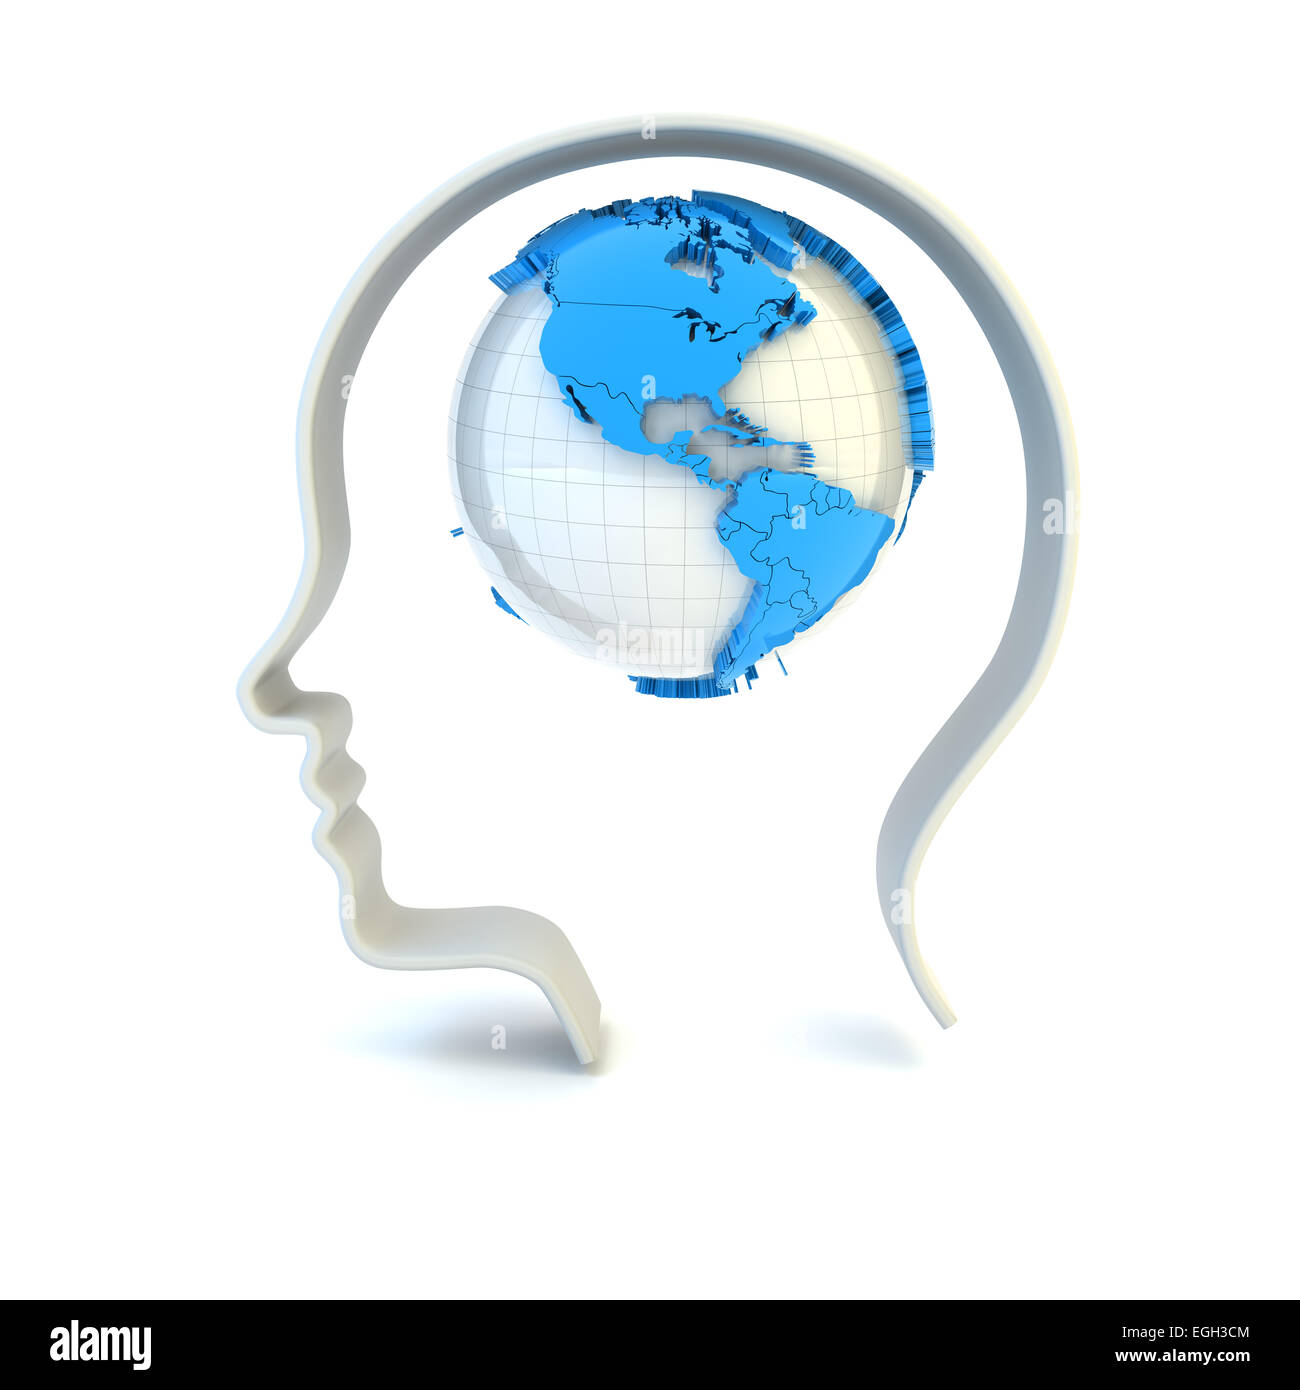 Global mind - Stock Image